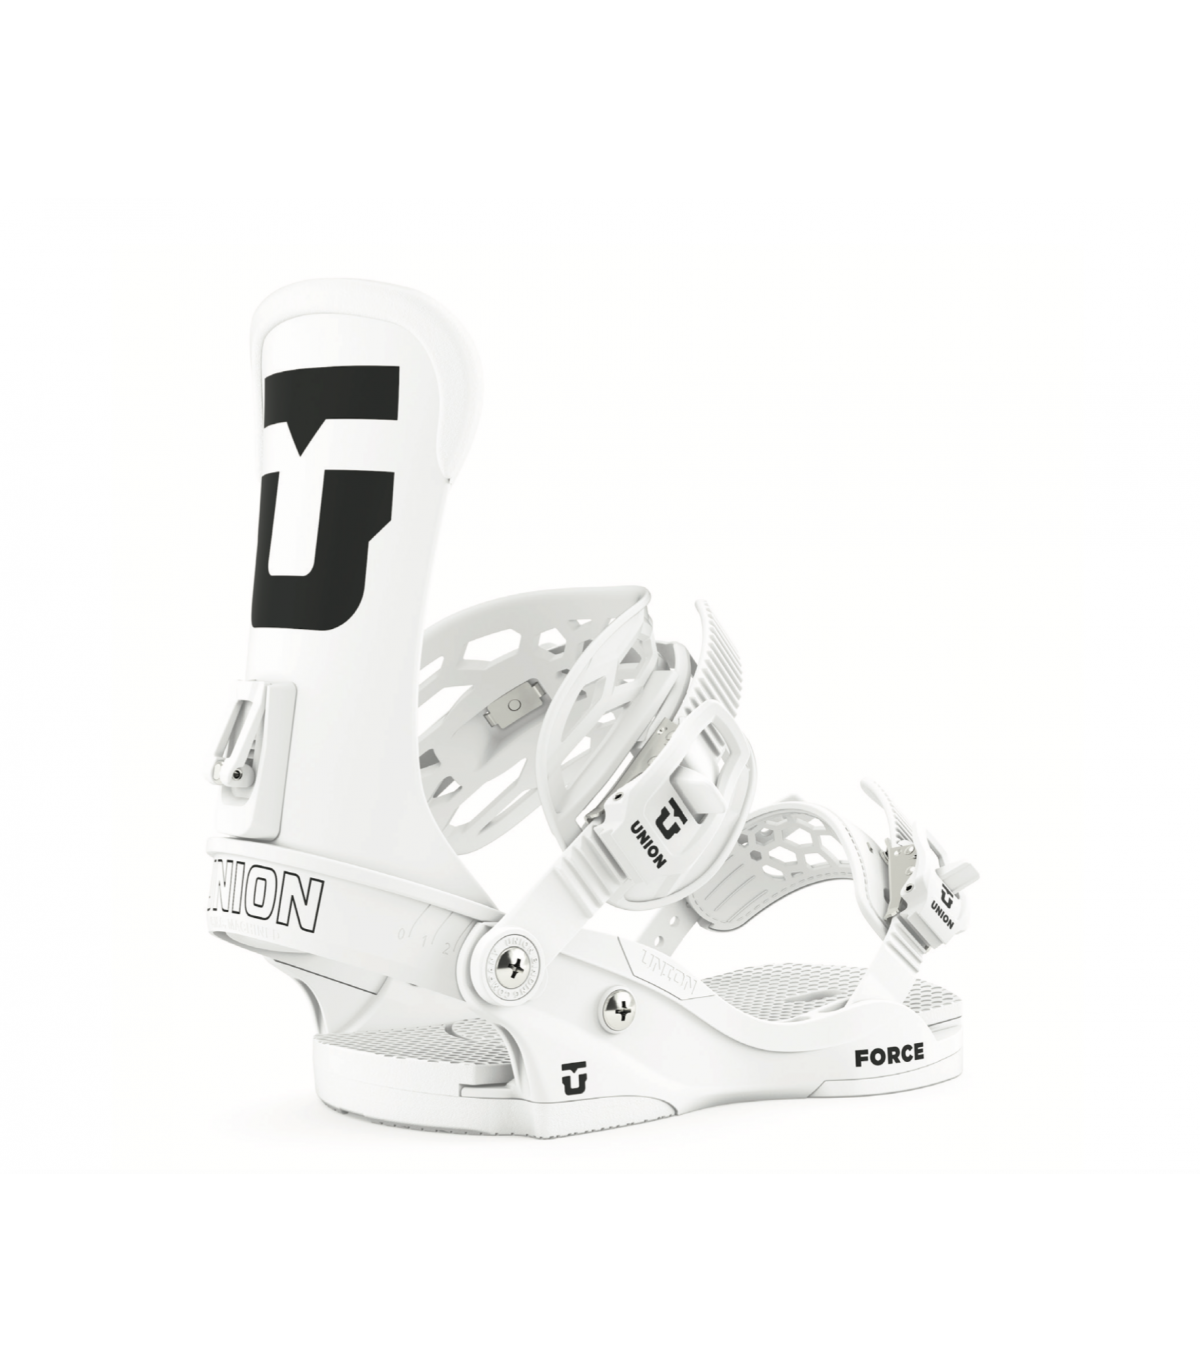 Union UCH Team Force L White (Limited Edition